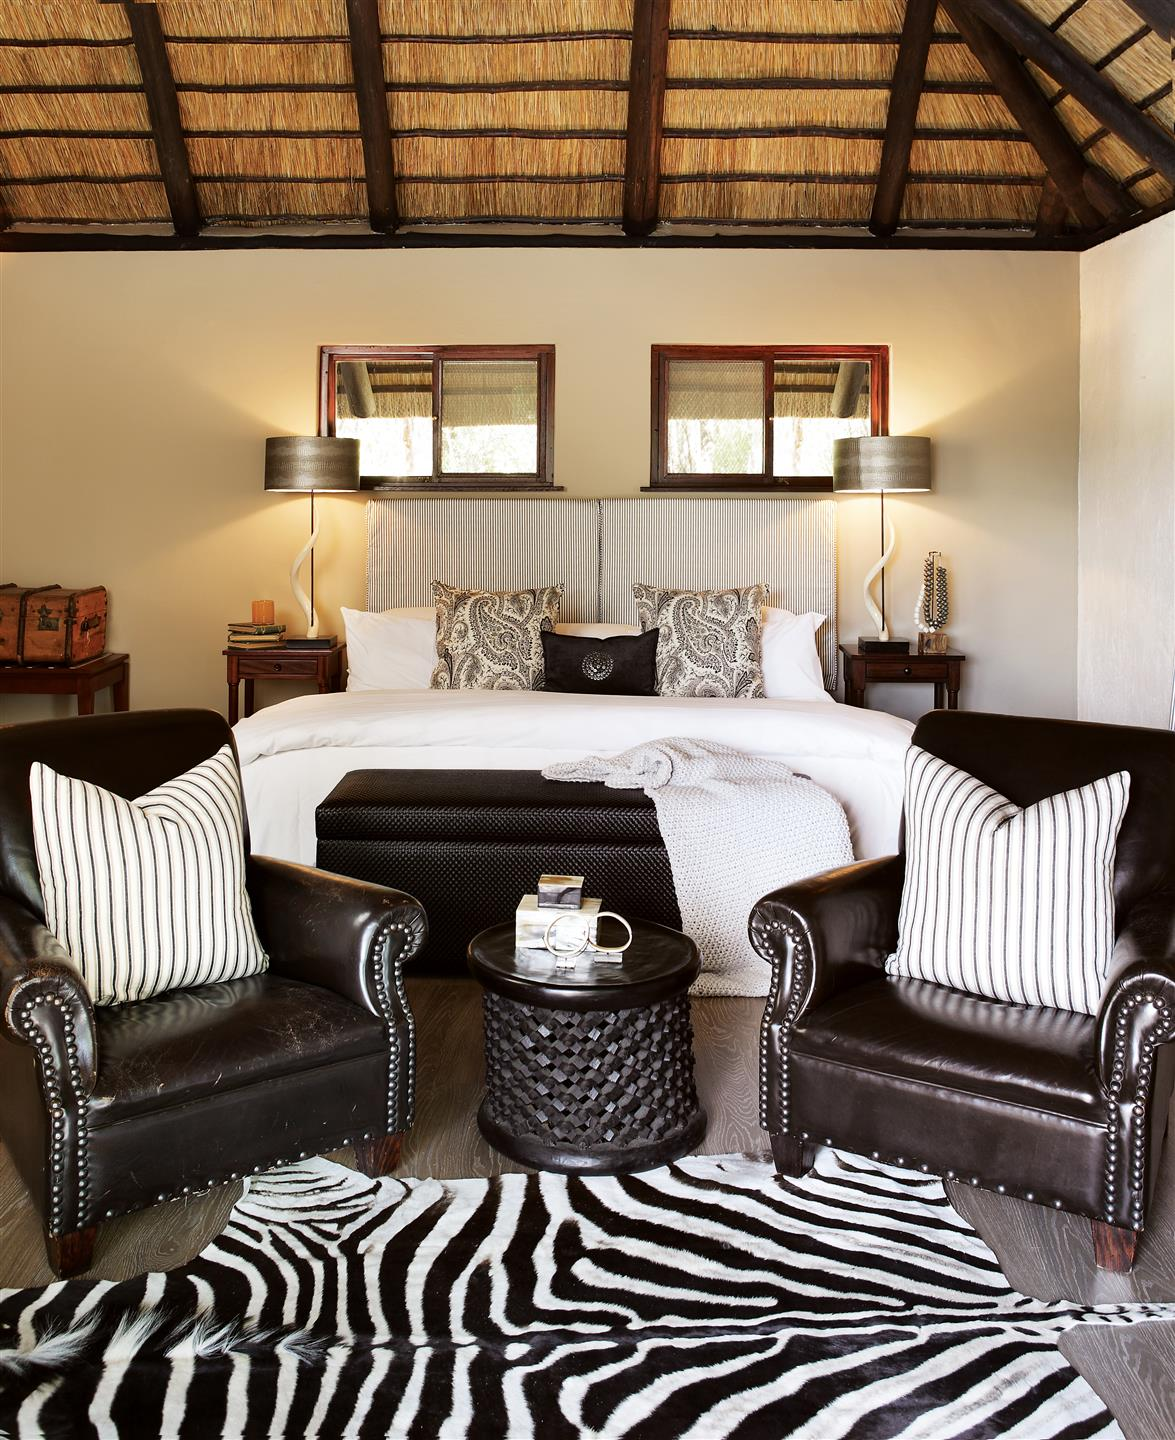 Suite at Londolozi Founders Camp